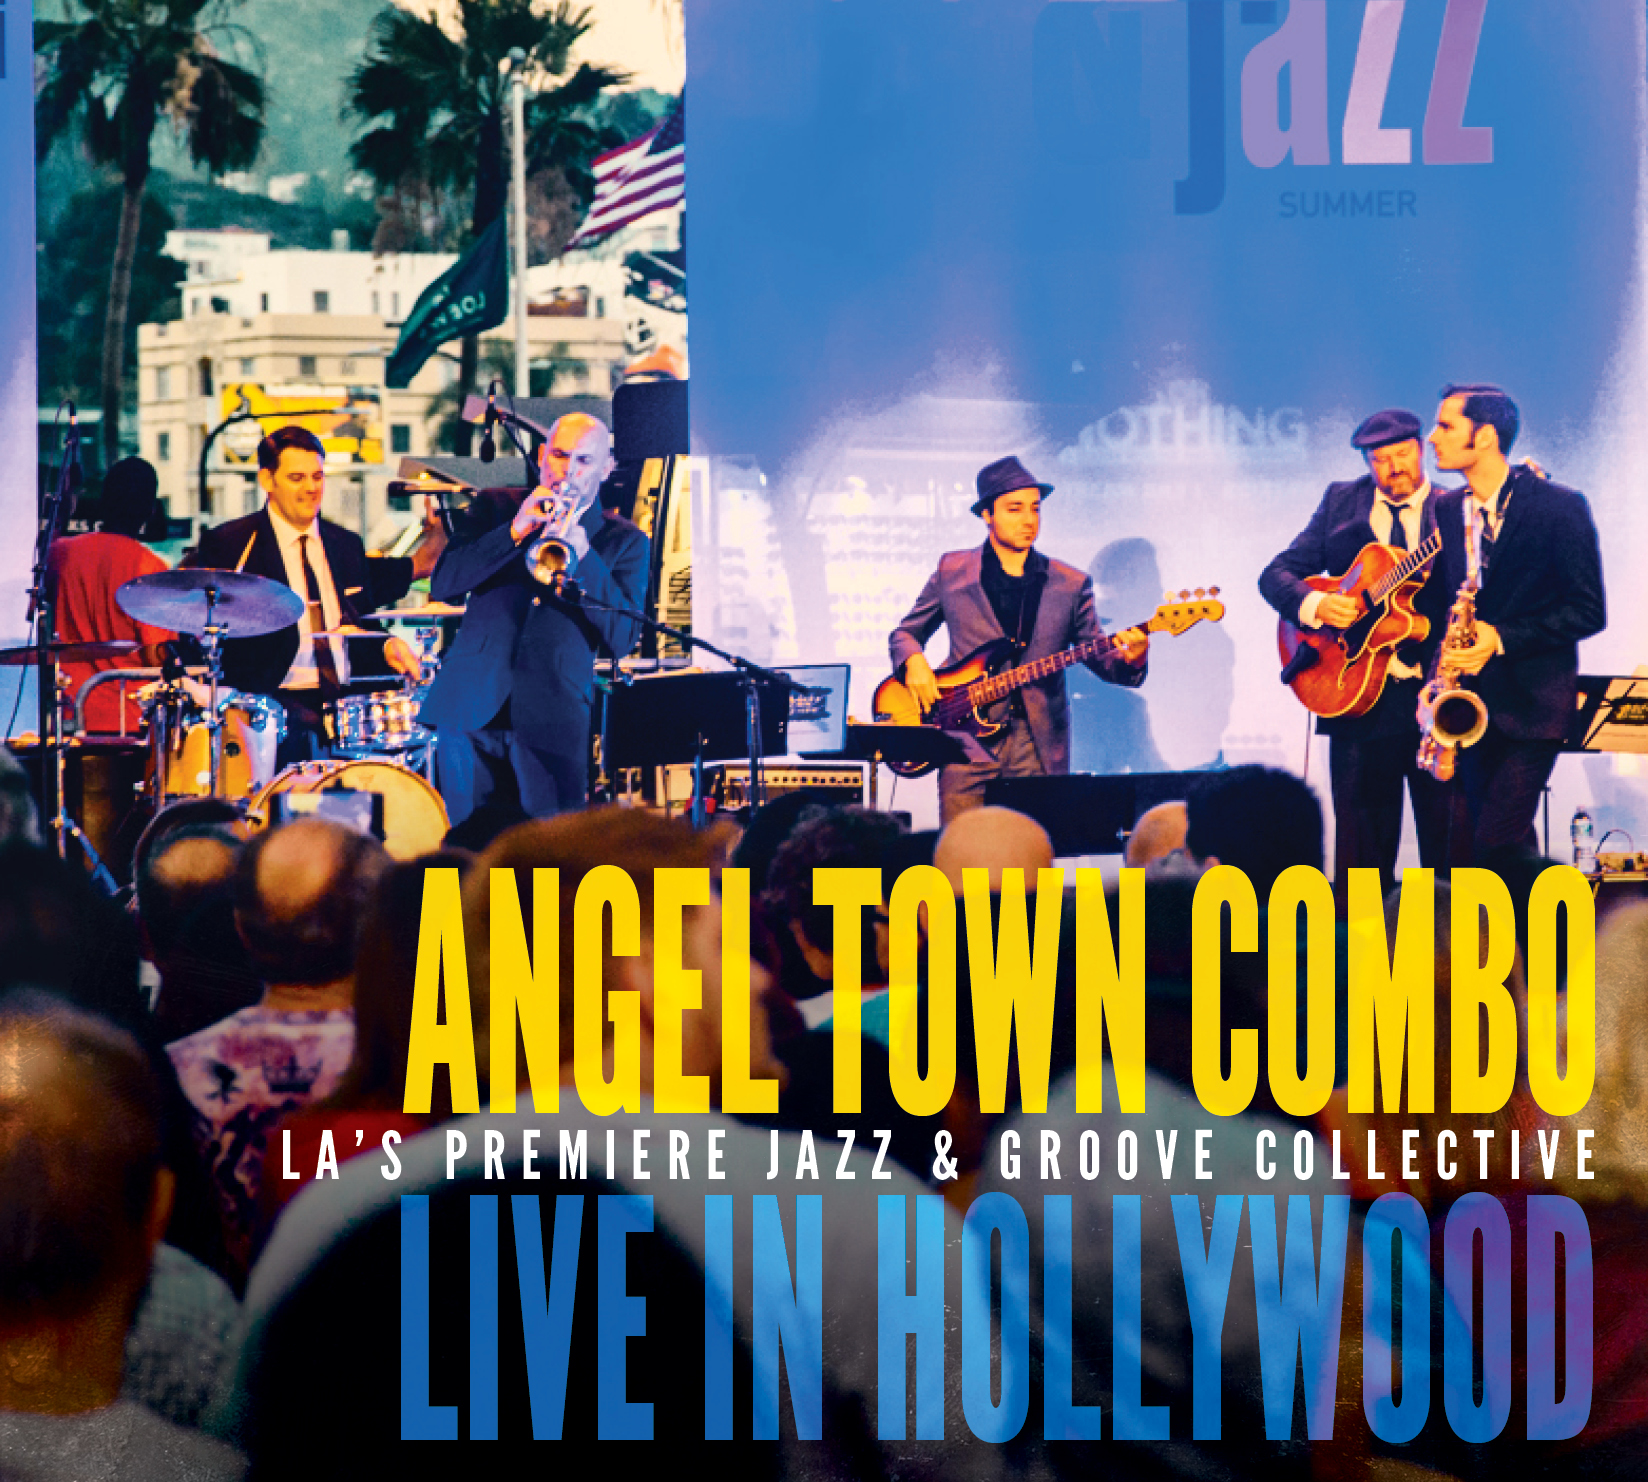 Angel Town Combo - Live in Hollywood Album Art.jpg